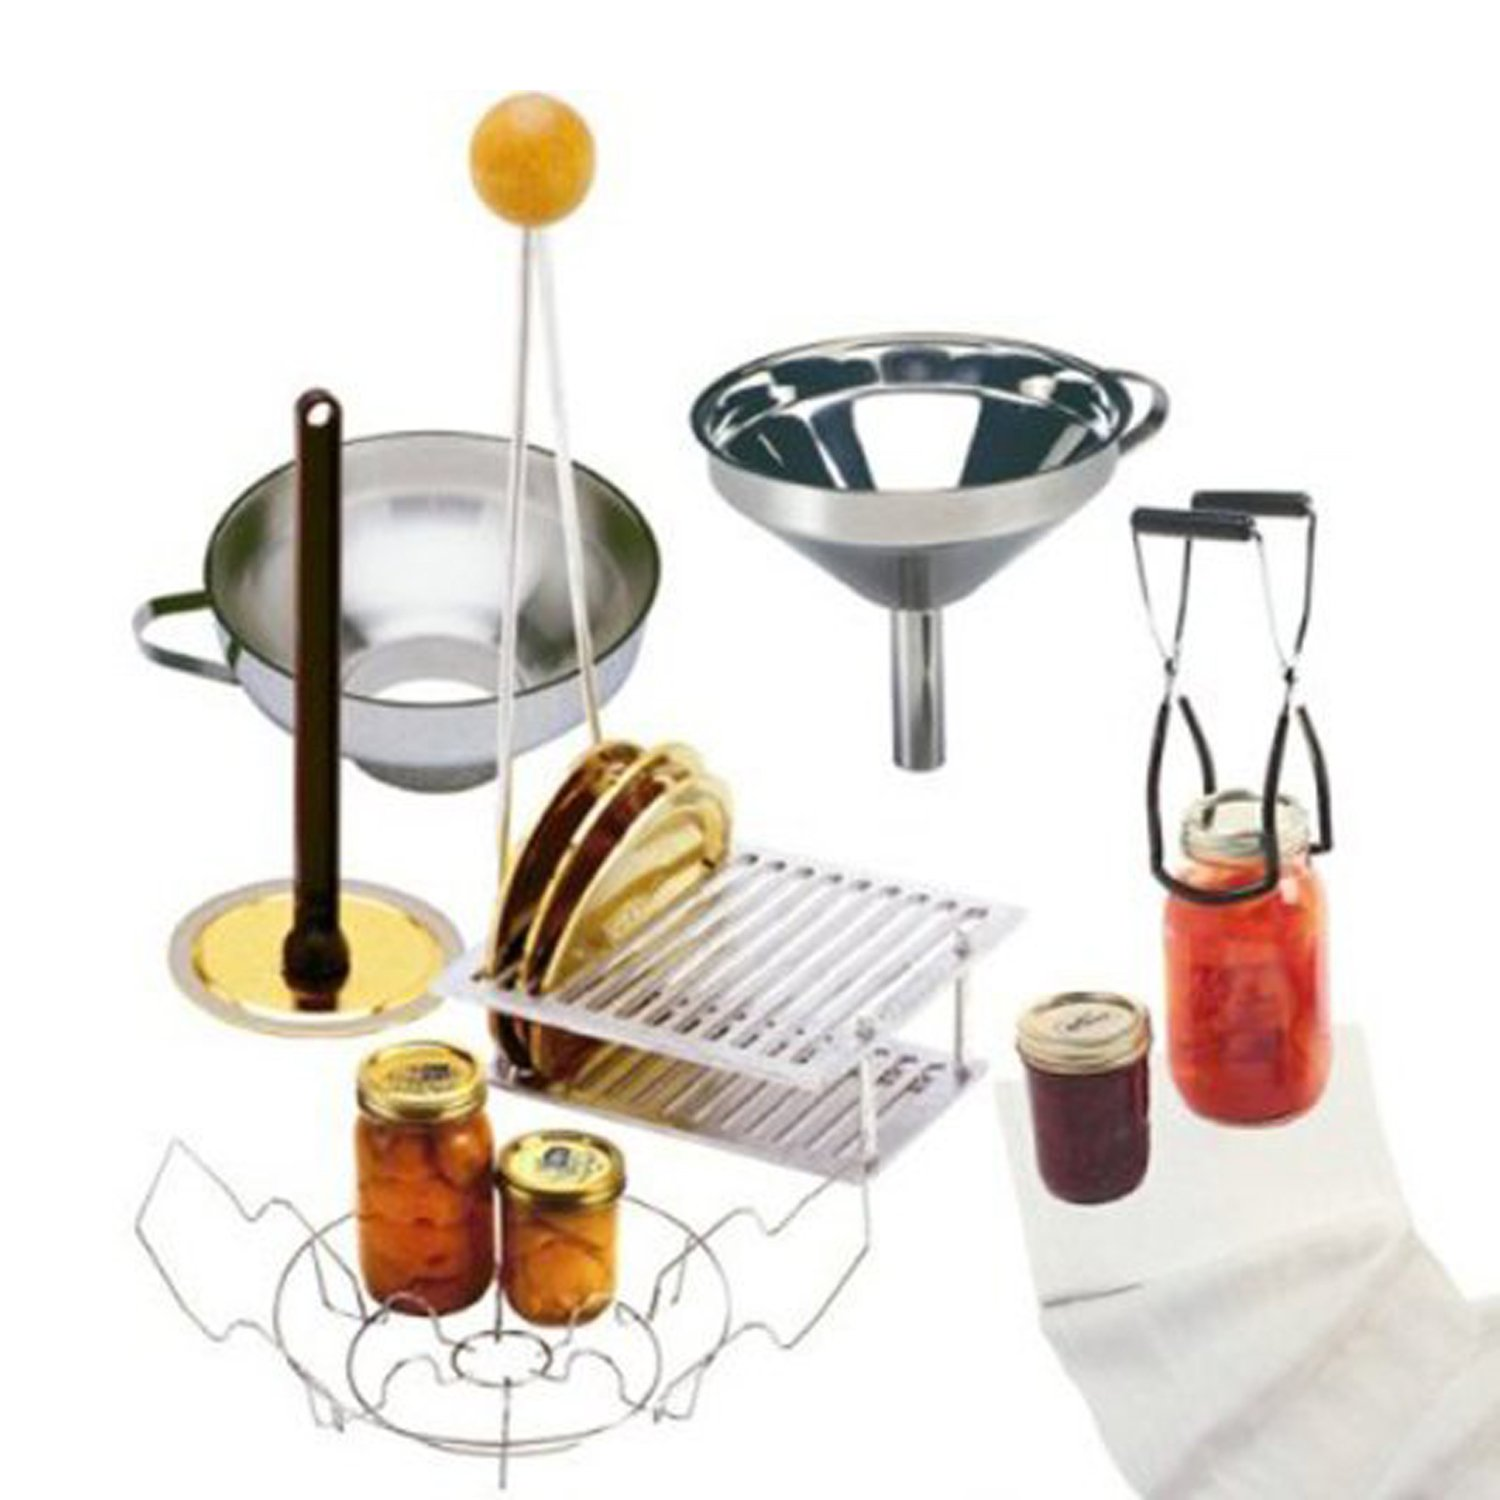 Norpro 2478367600456 7-Piece Home Canning Set